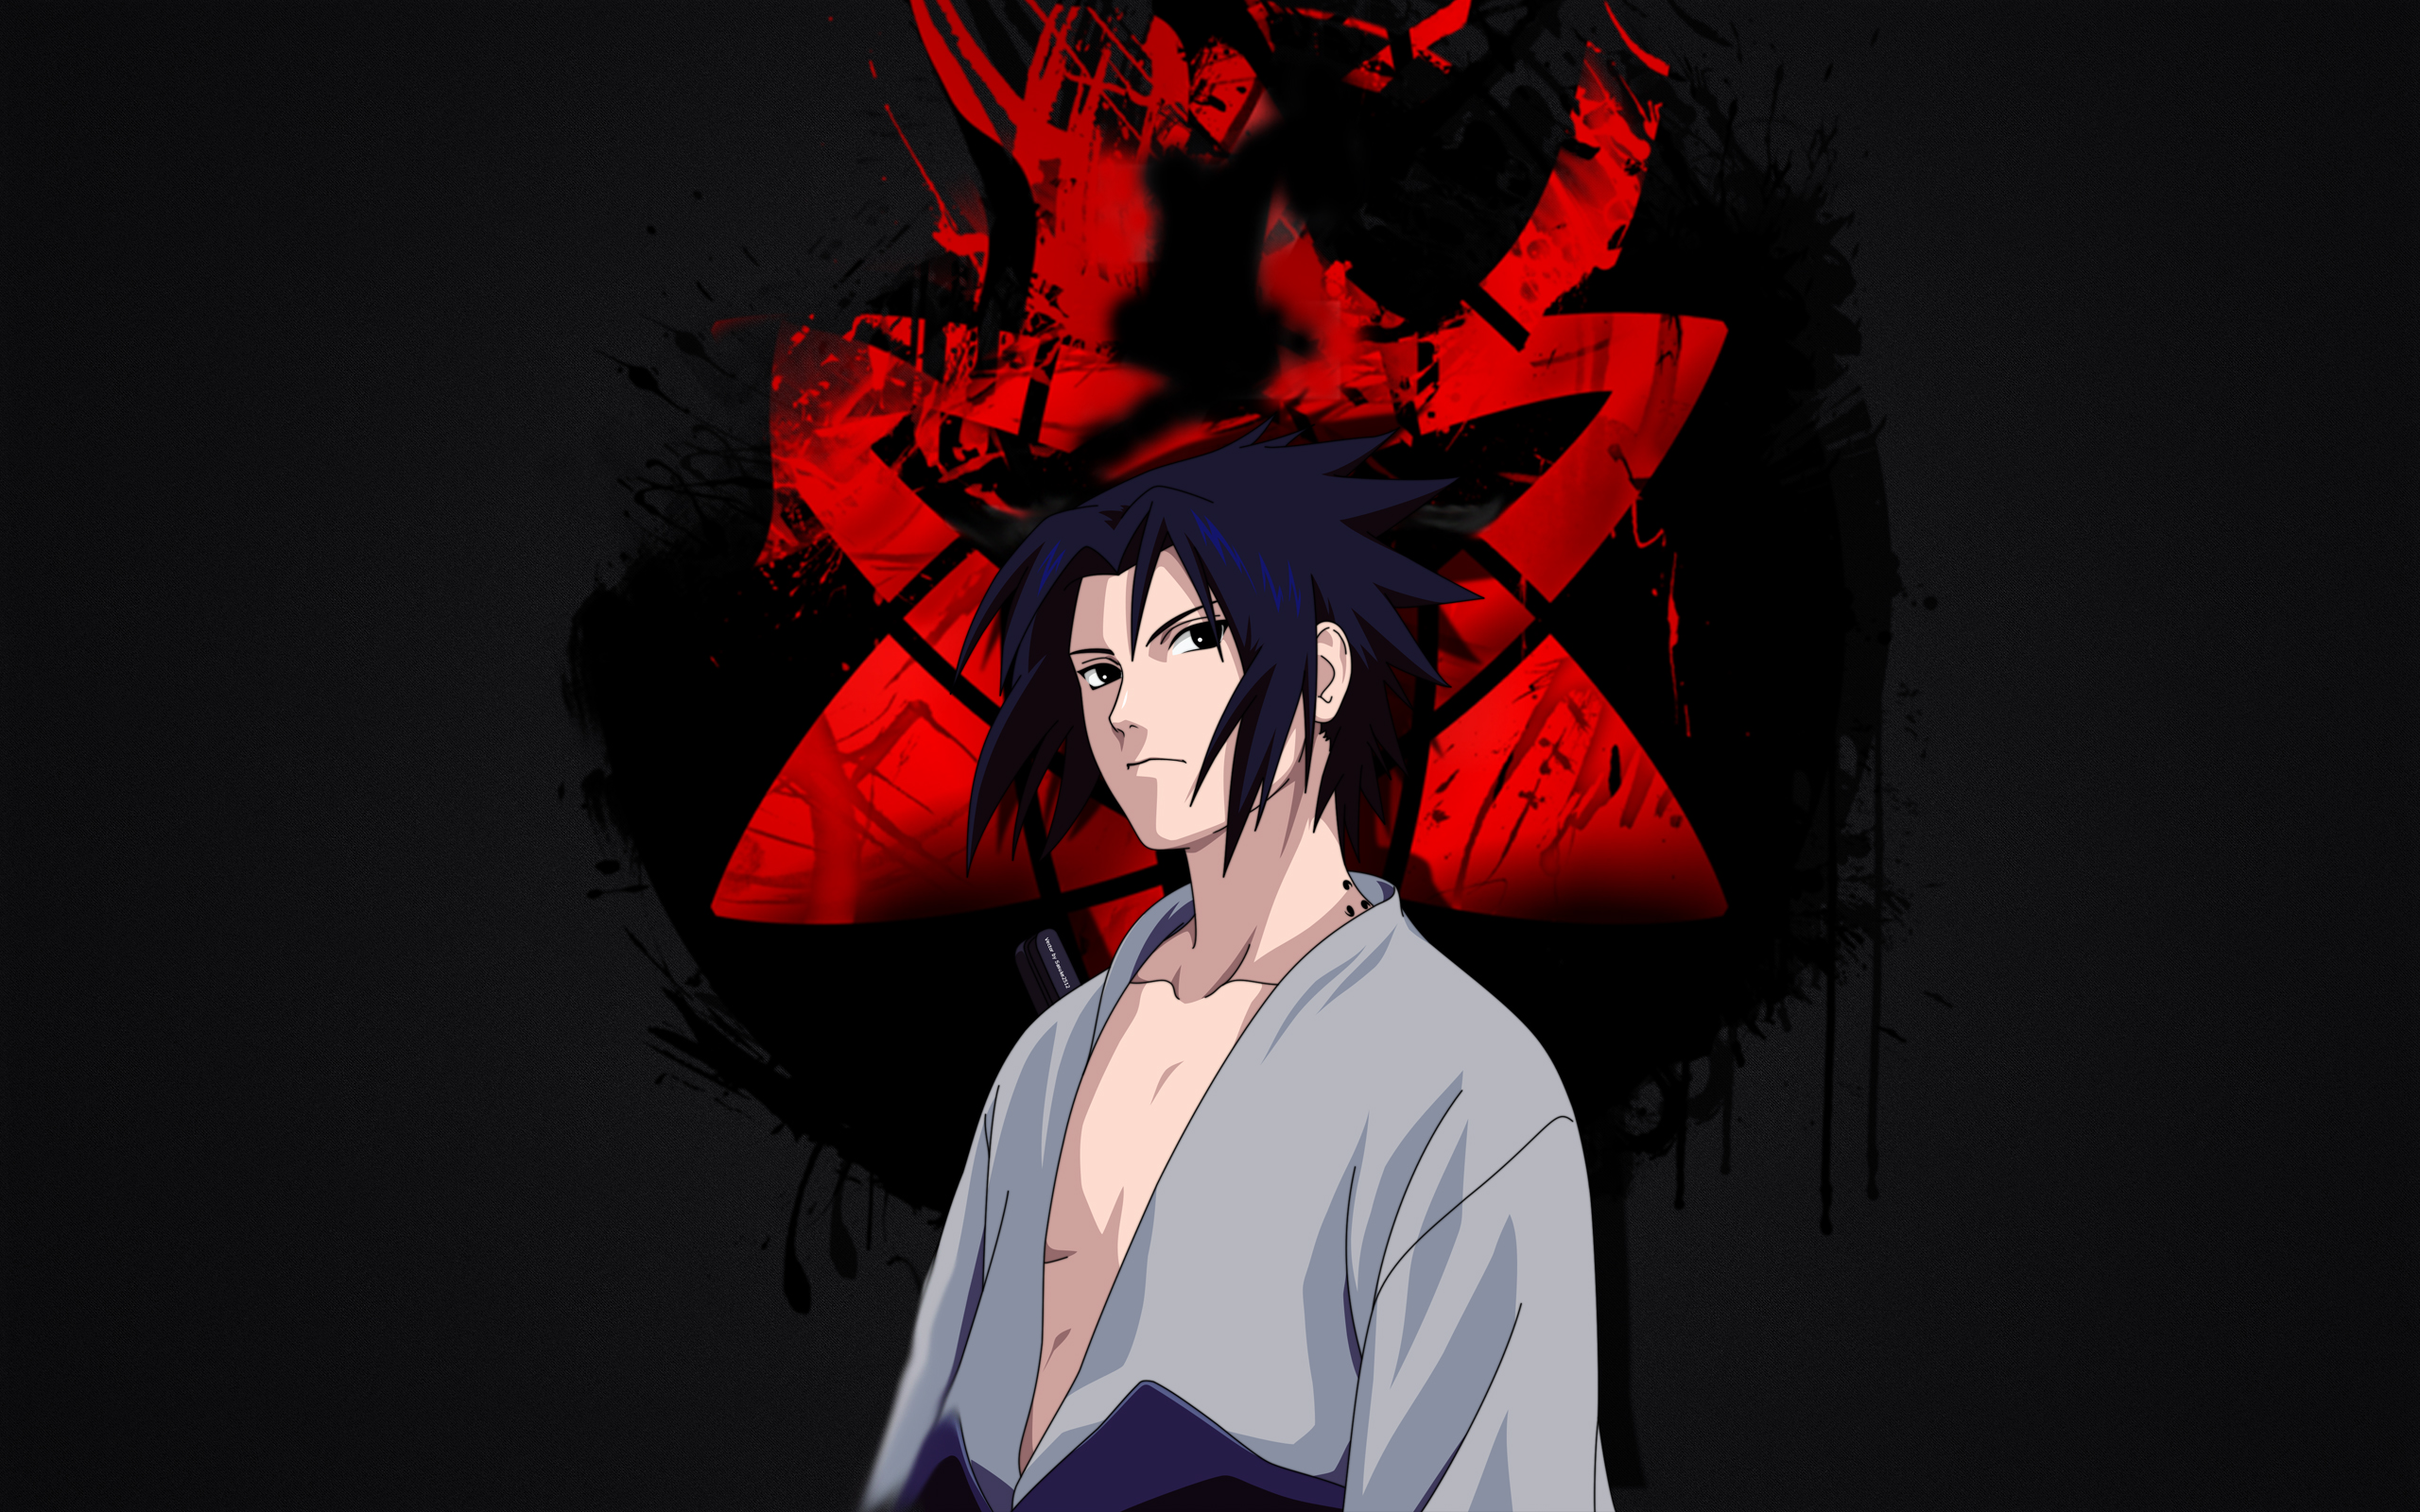 Wallpaper Of Anime Naruto Sasuke Uchiha Sharingan